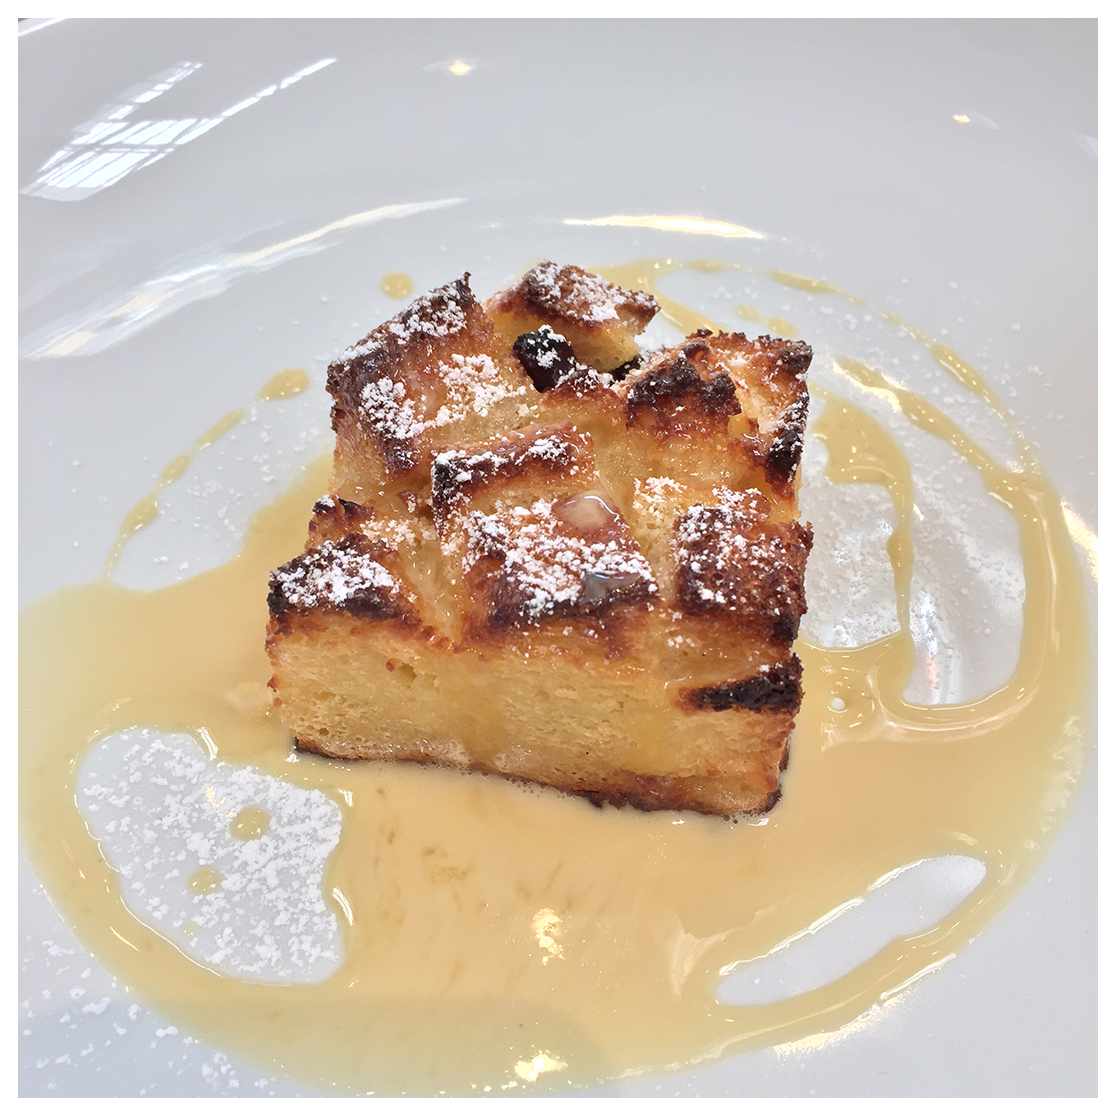 Candy Cap Bread Pudding with Maple Creme Anglaise